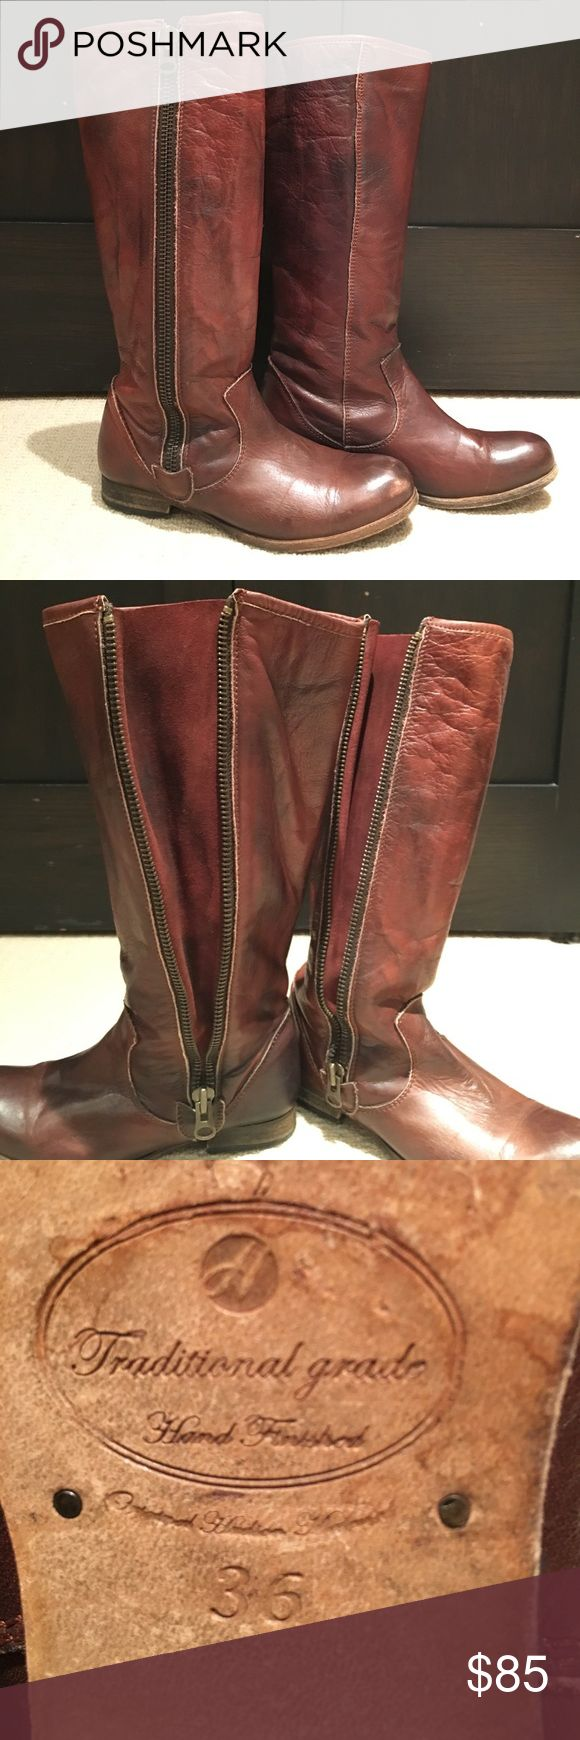 H by Hudson- side zip tall boot- 36 Beautiful, soft brown leather. Side zip can be worn at any height. Great boot for large calfs! Worn only a handful of times, slight wear on outer toe on right boot. H By Hudson Shoes